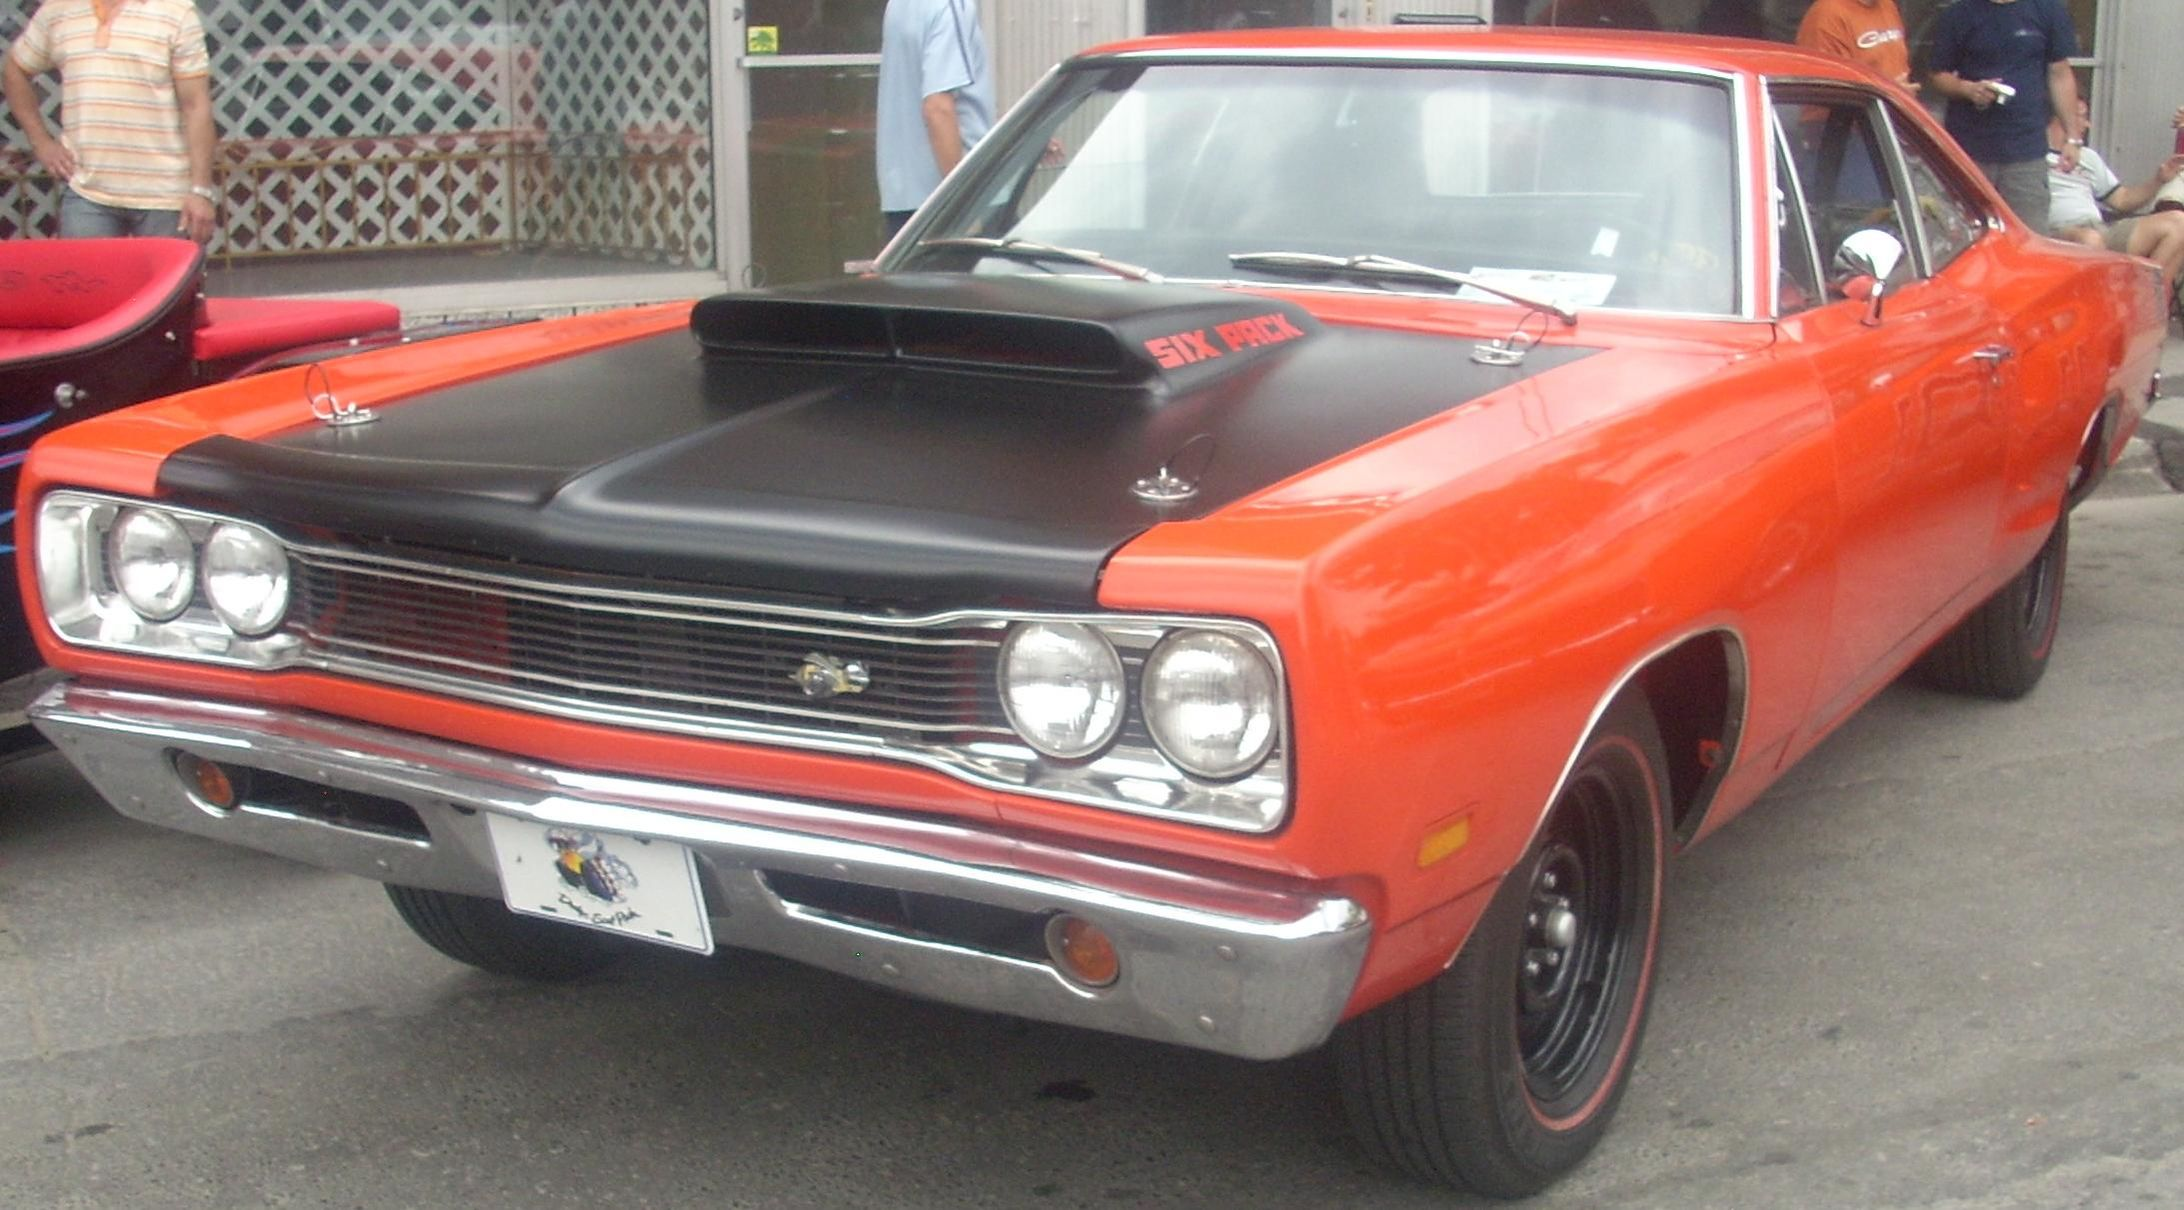 Dodge Super Bee - The complete information and online sale with free